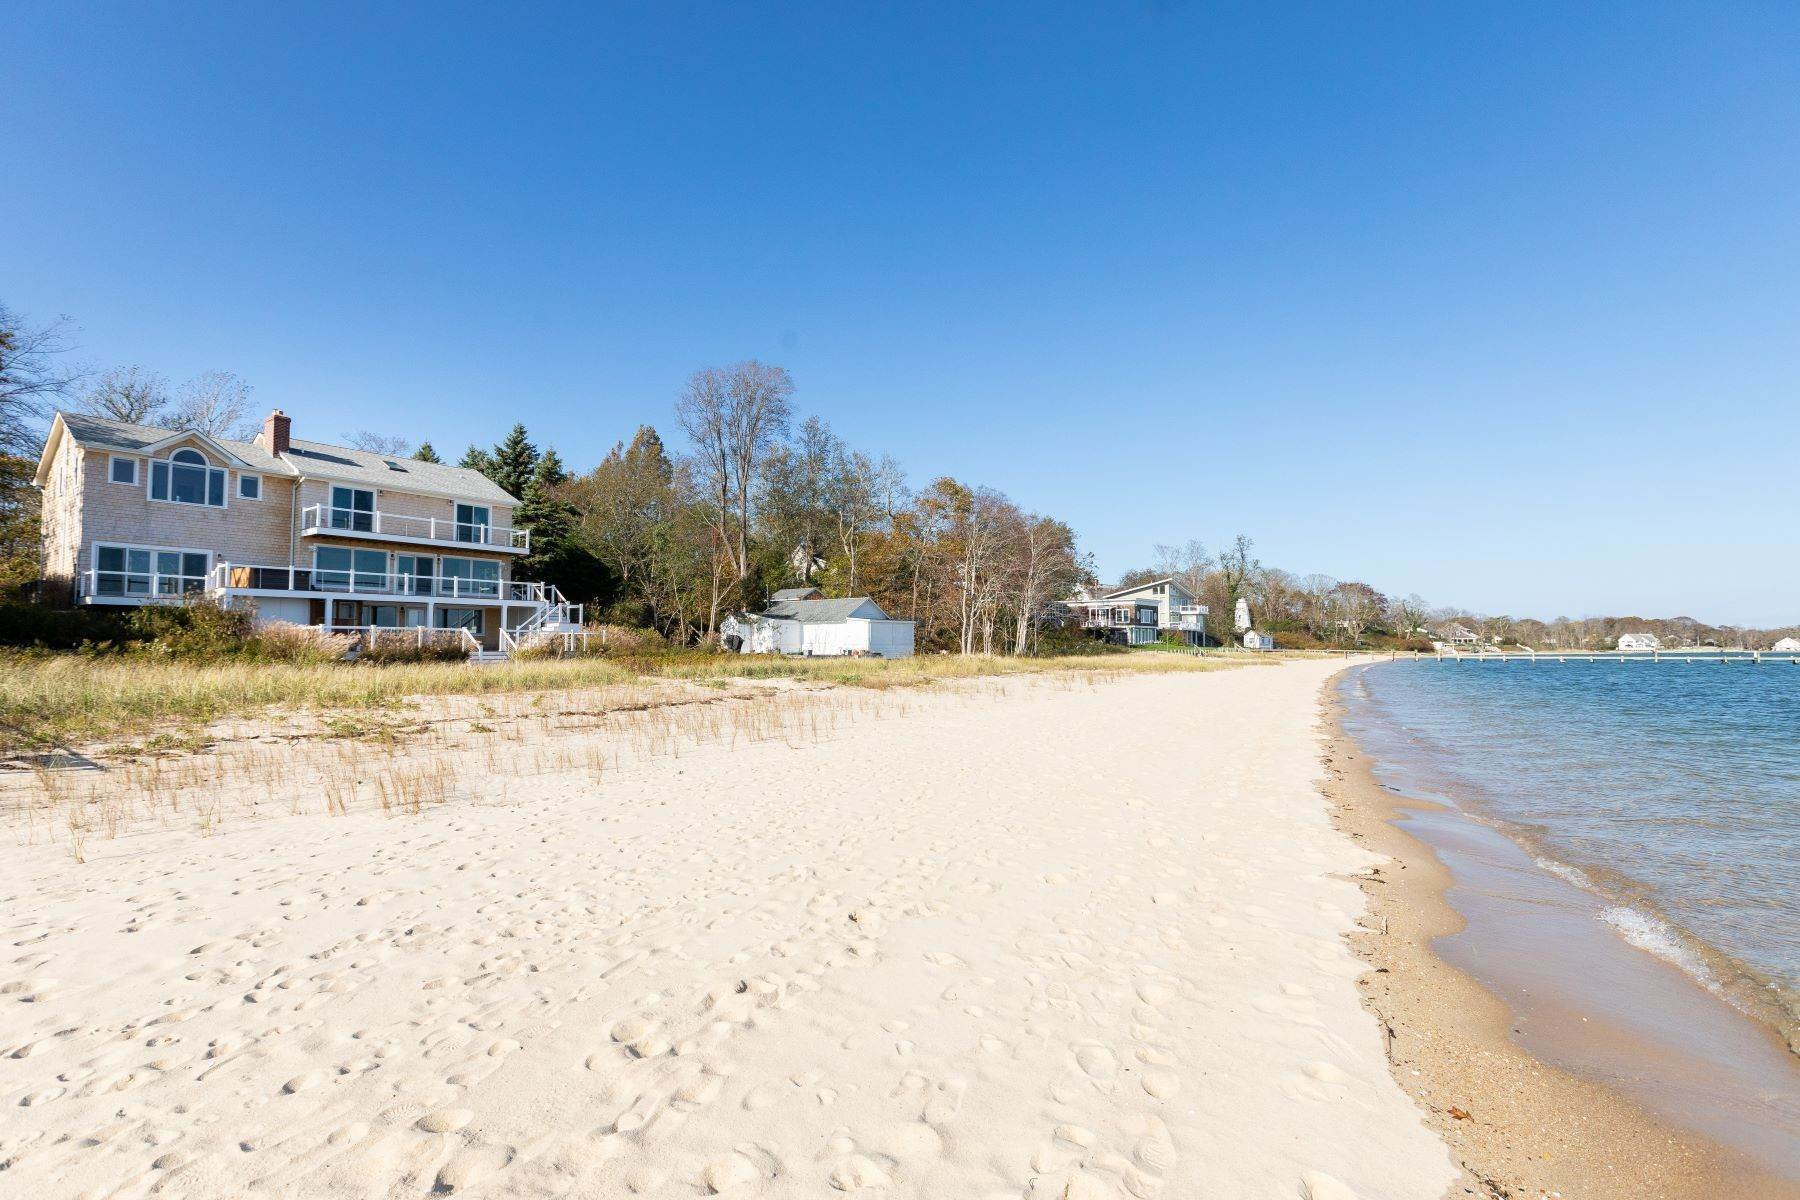 Single Family Homes for Active at 725 Terry Ln, Southold, Ny, 11971 725 Terry Ln Southold, New York 11971 United States